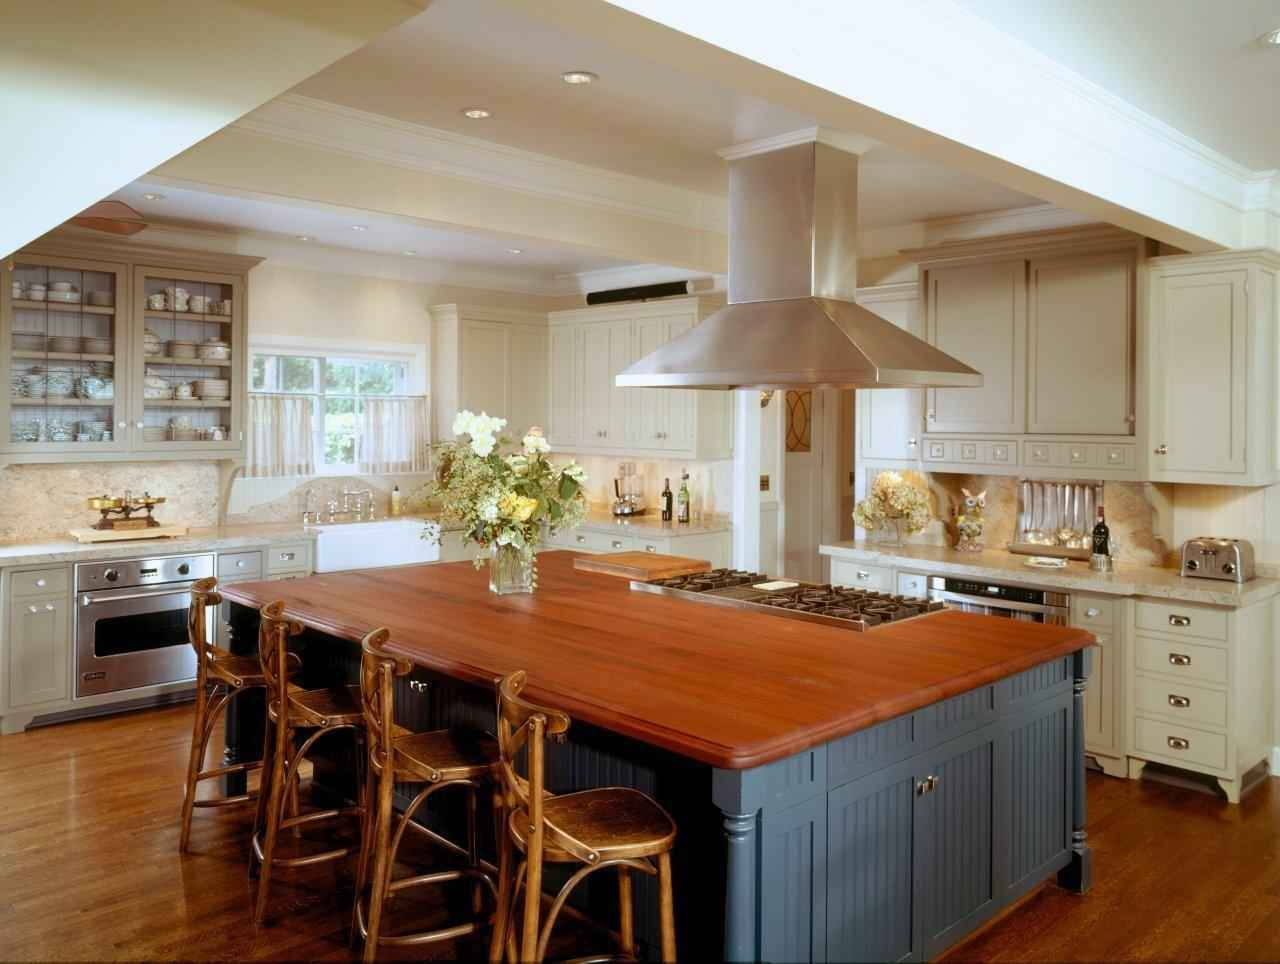 Inexpensive countertop ideas for your kitchens for Kitchen countertop designs ideas